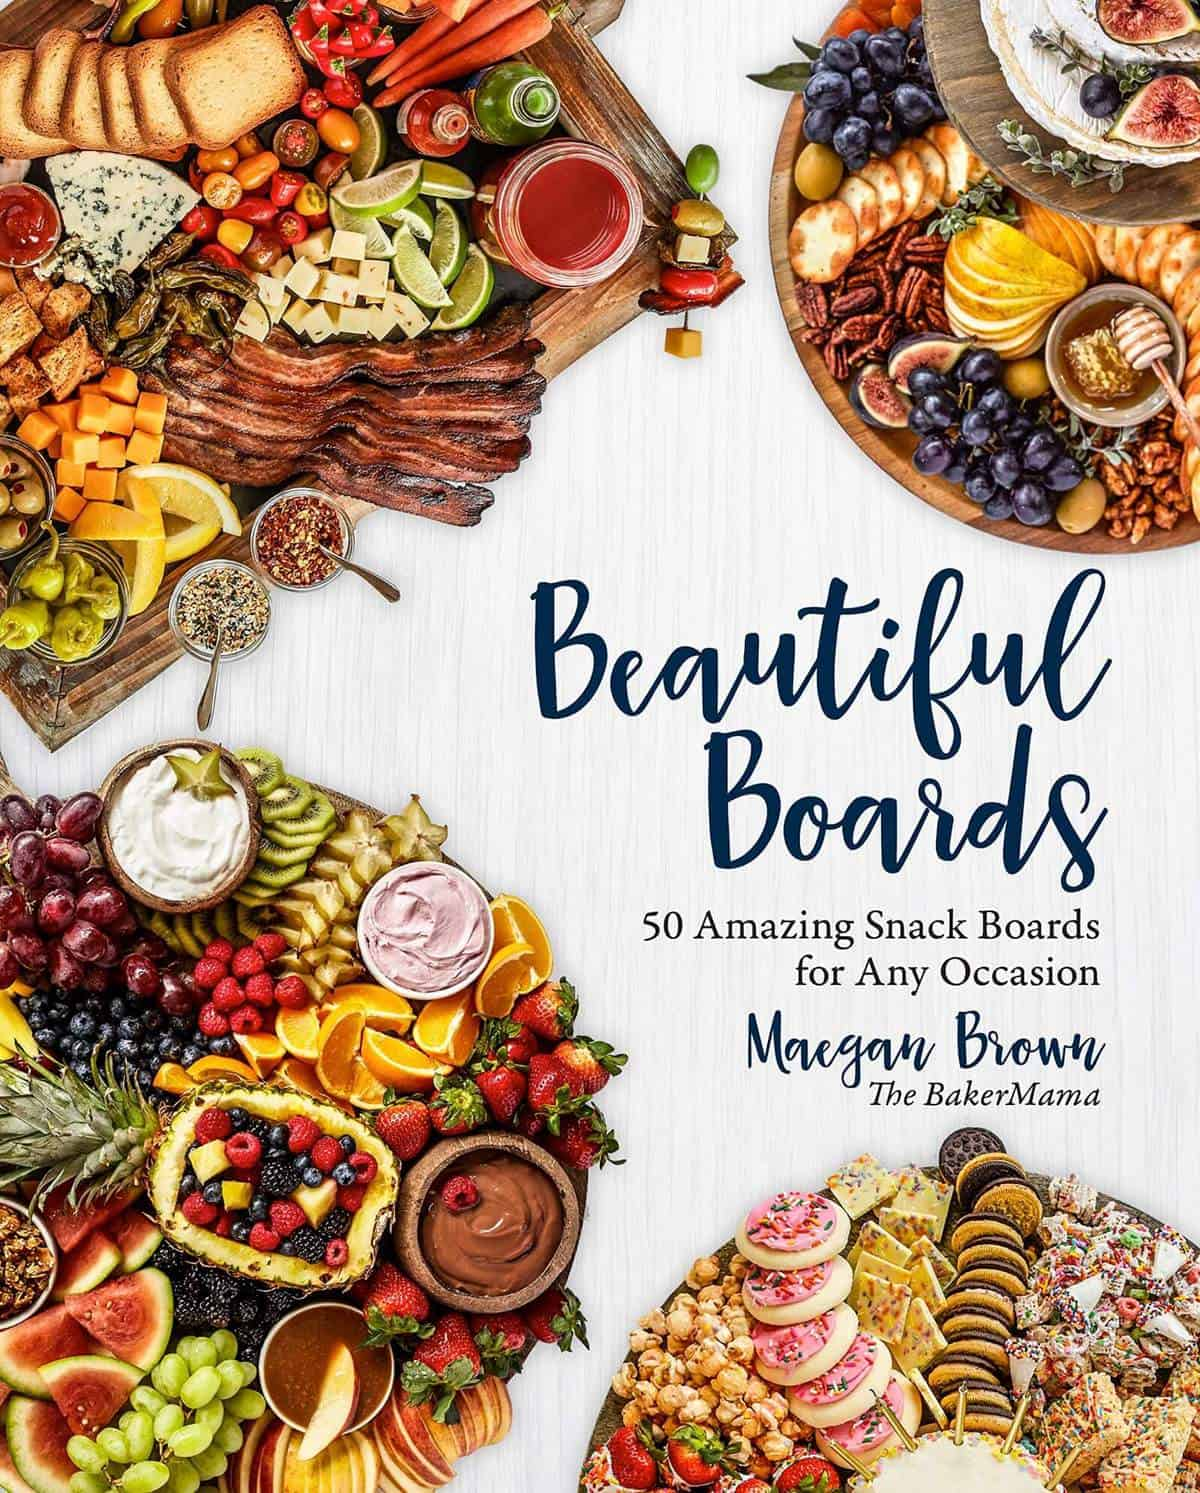 Beautiful Boards cookbook by The BakerMama